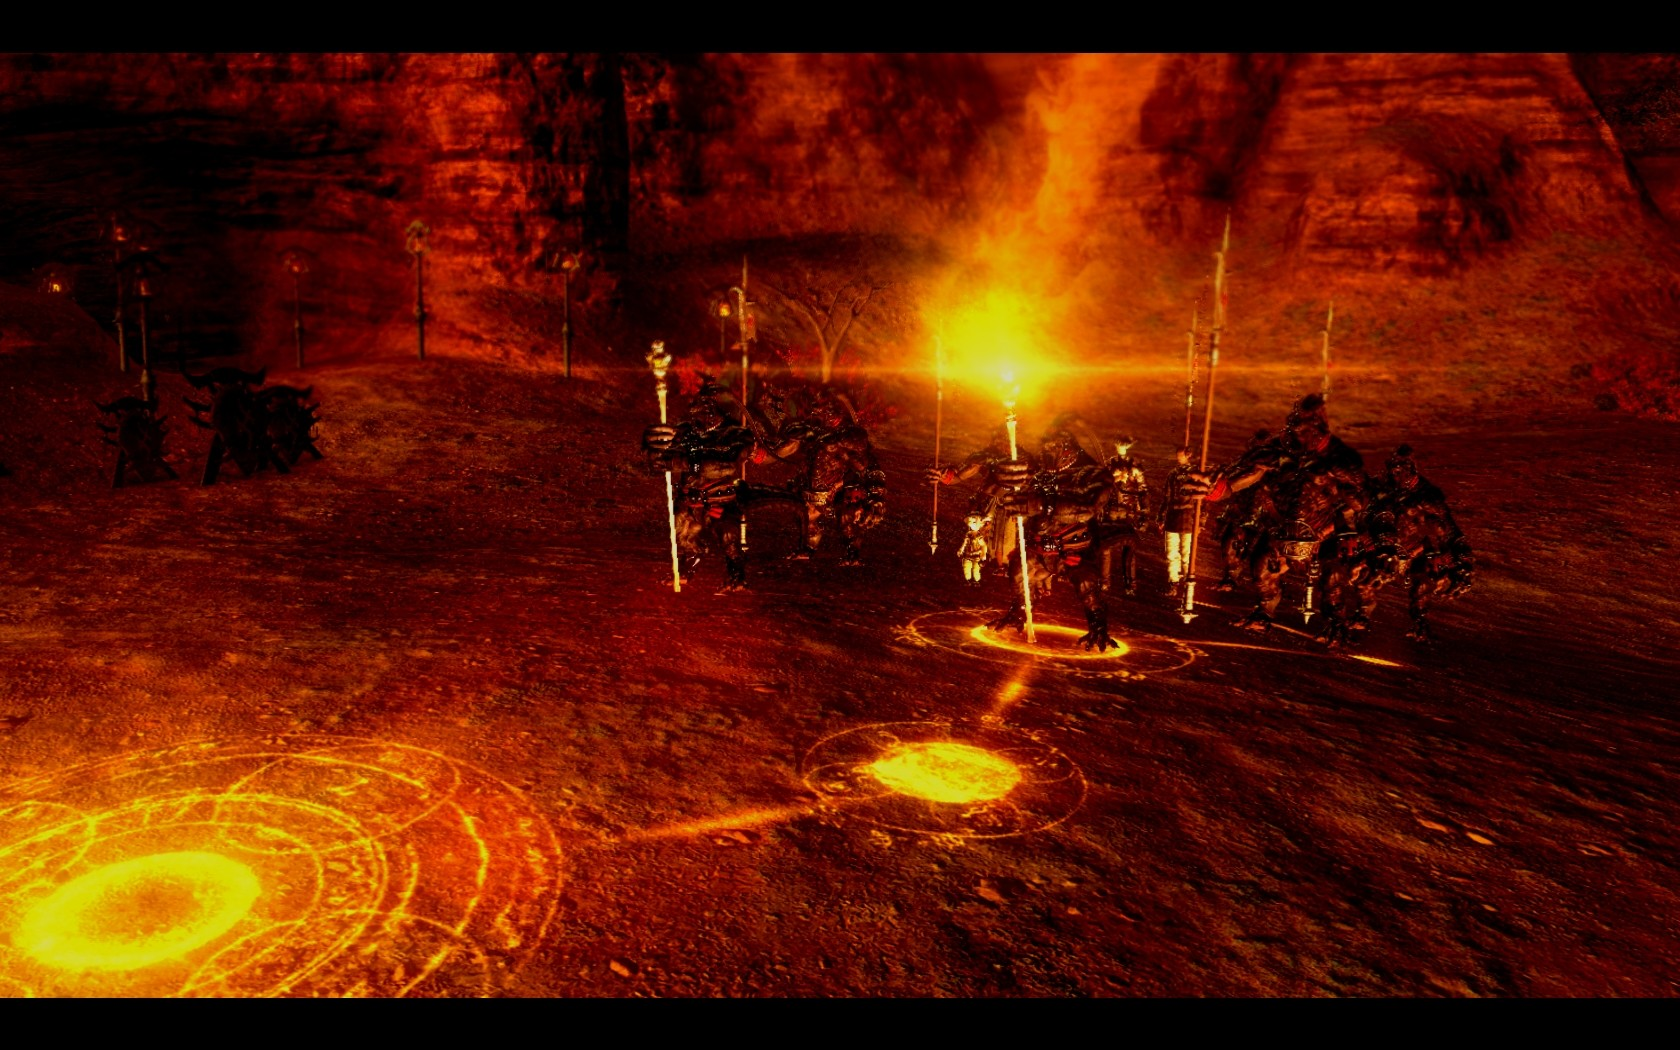 Final Fantasy XIV - Rank 38 Storyline quest summoning ifrit